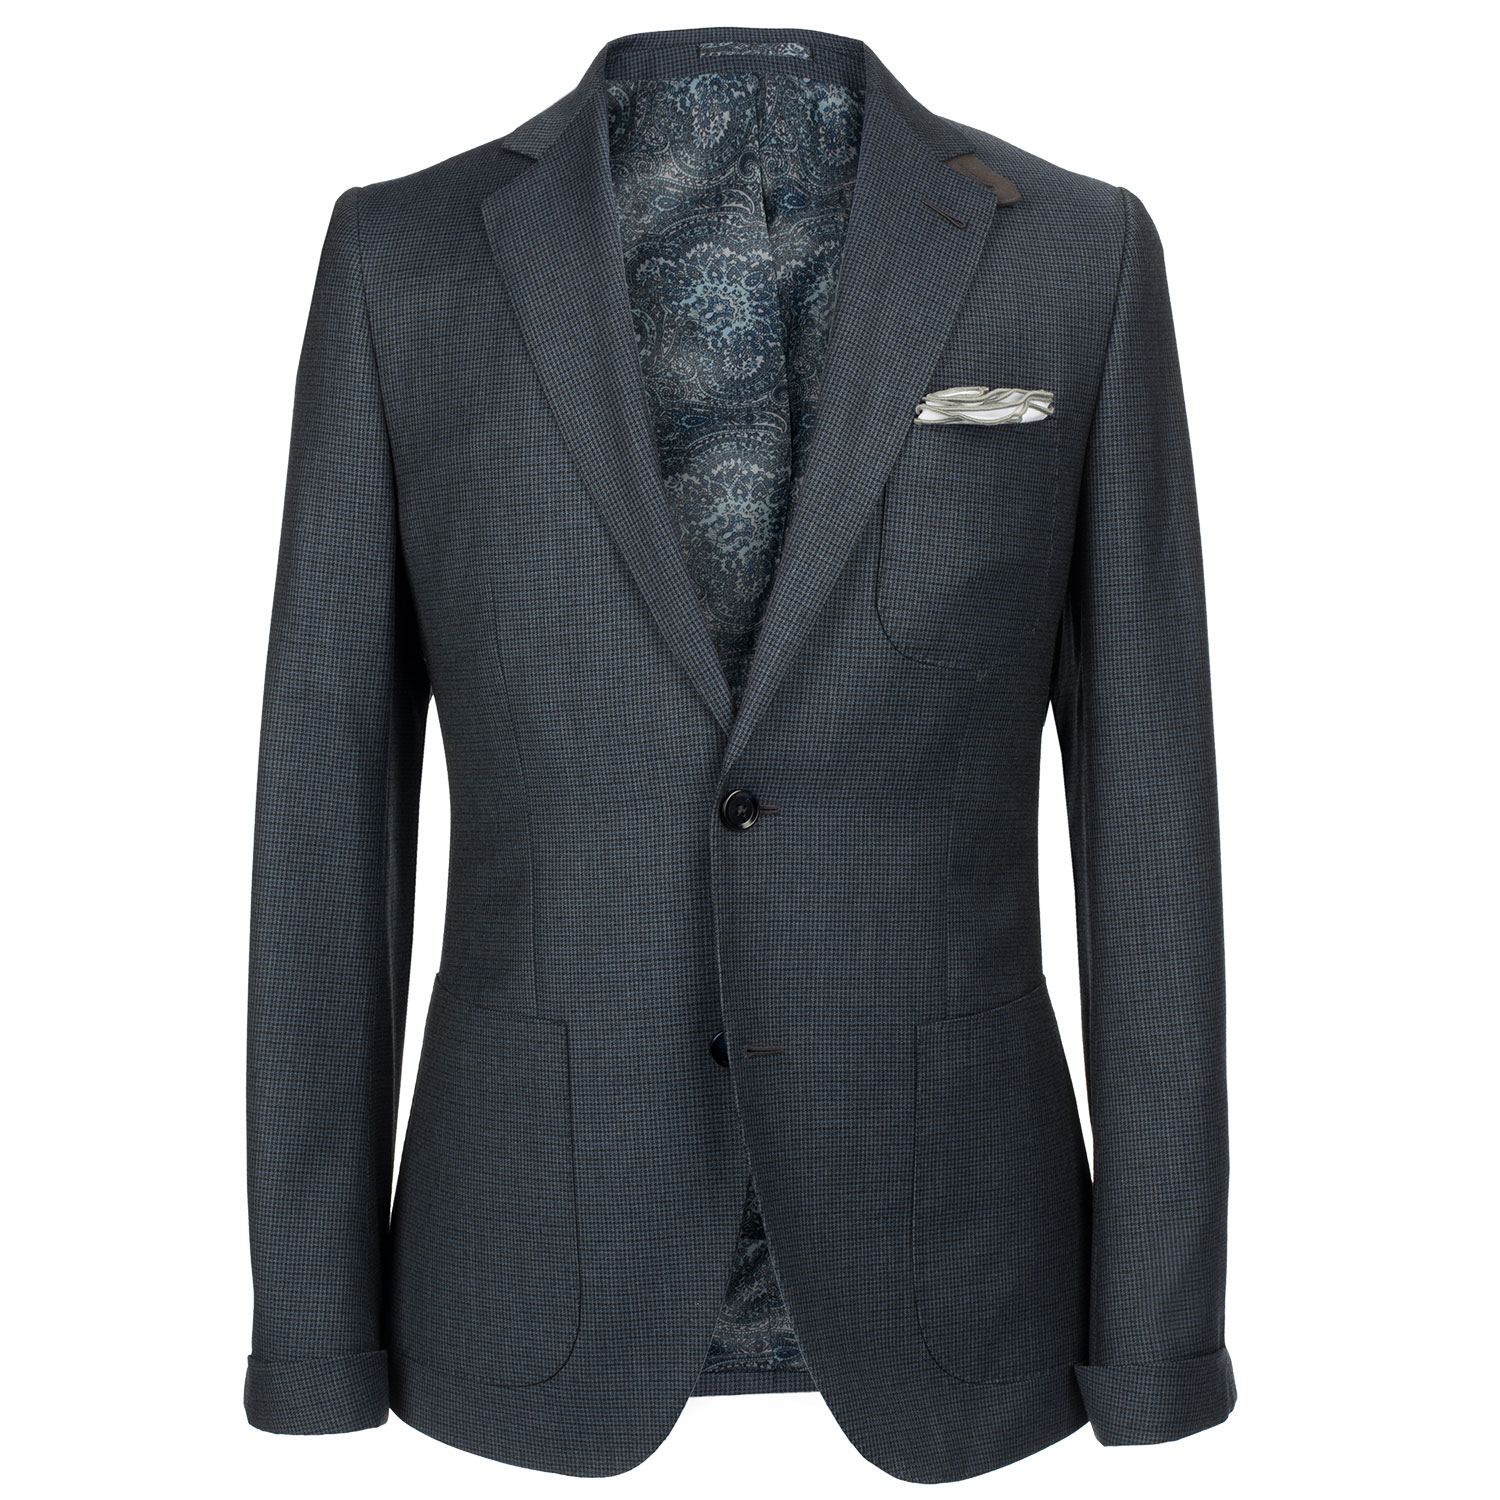 Made Suits Notched Lapel Suit Navy Houndstooth by Filarte.jpg